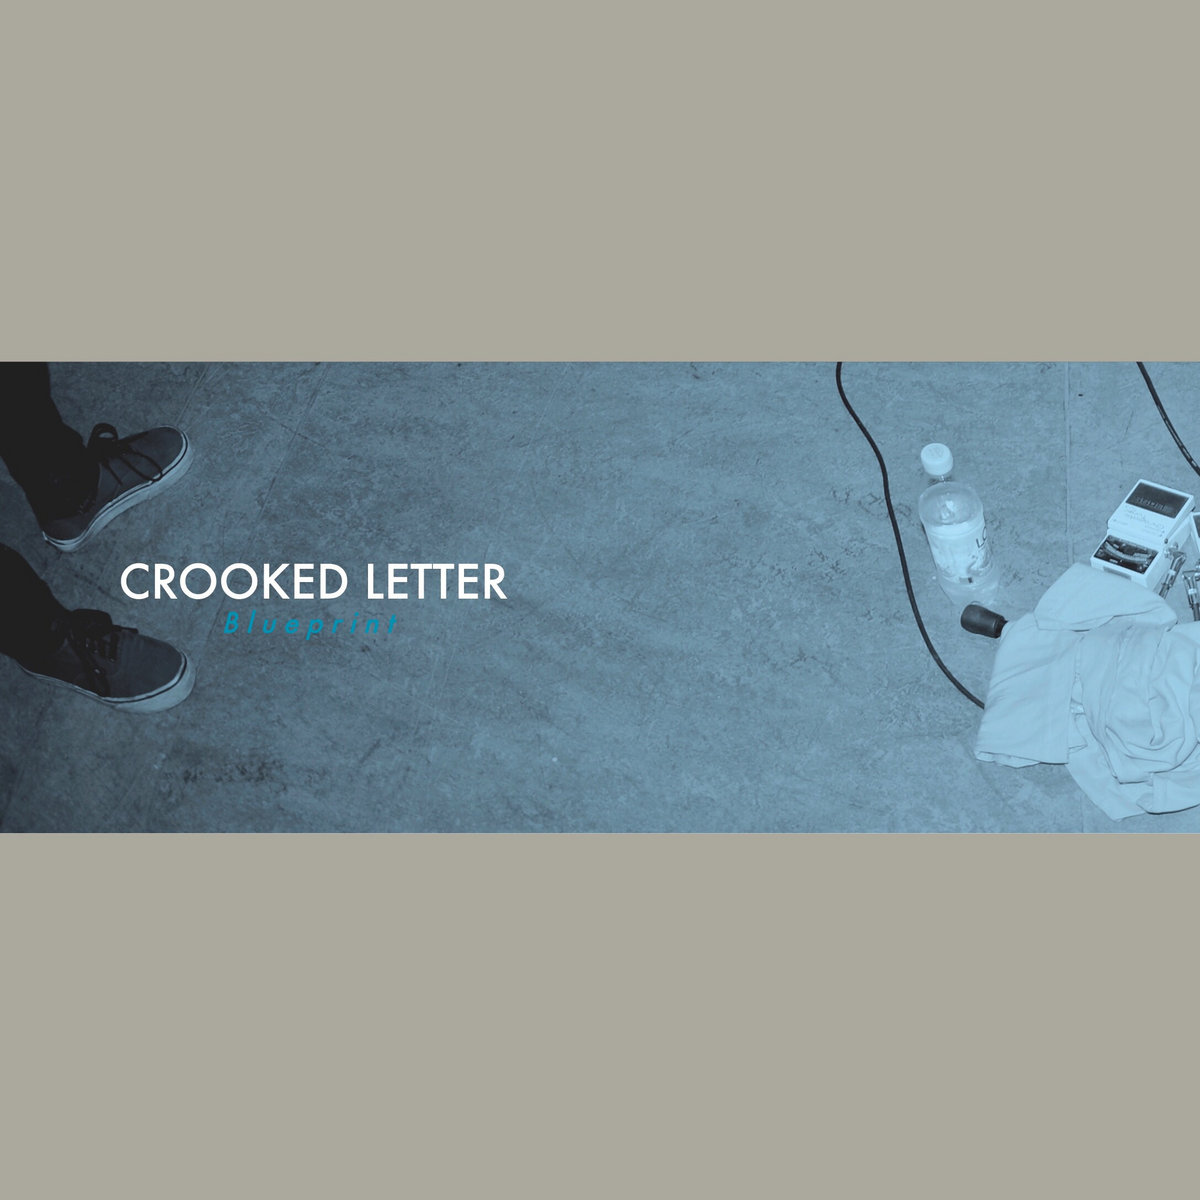 Crooked letter blueprint by crooked letter malvernweather Choice Image